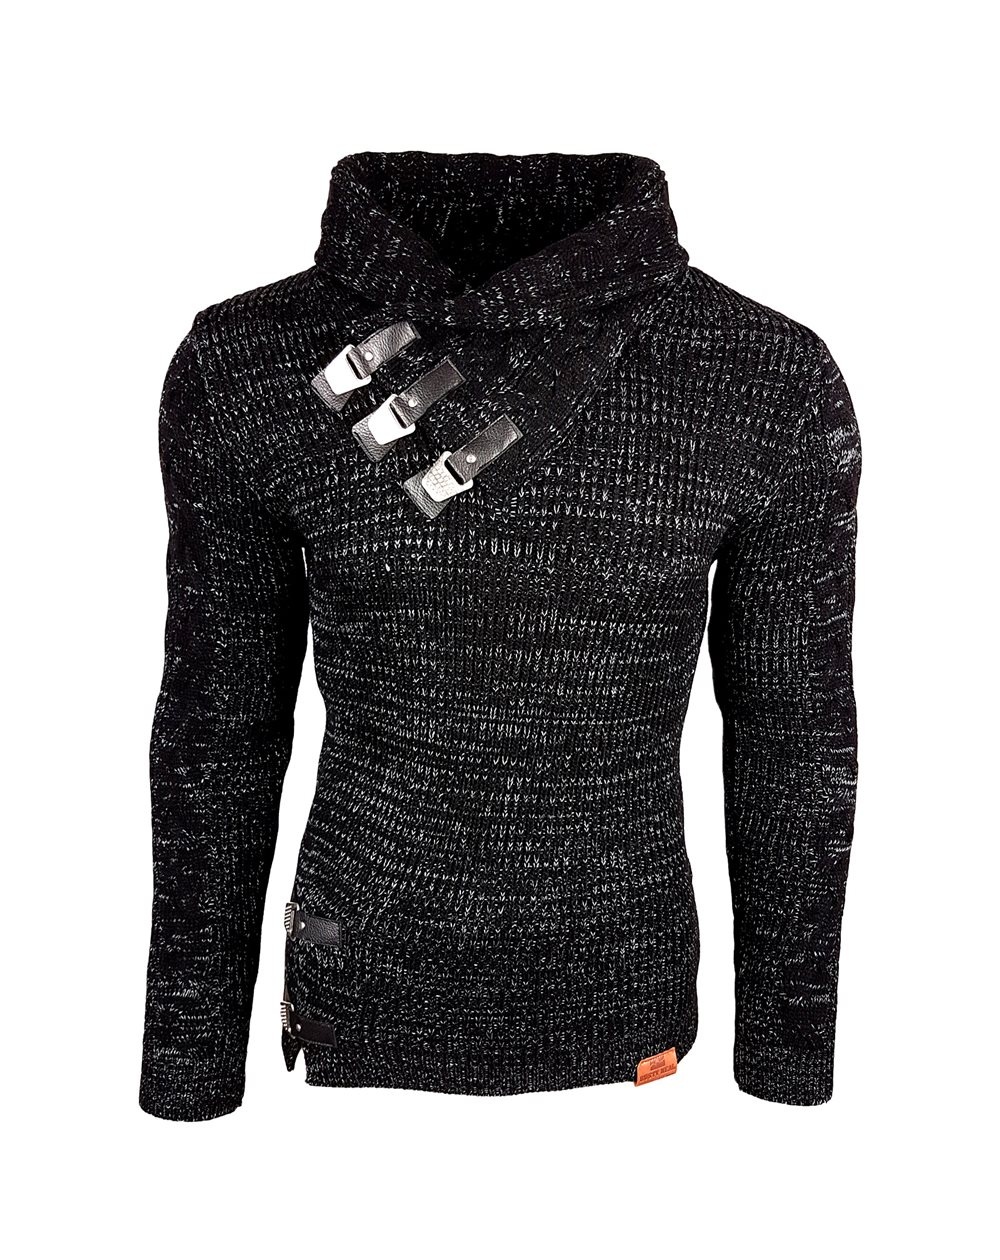 Subliminal Mode - Pull homme col chale avec bouton pression - Tricot grosse maille - Col chale